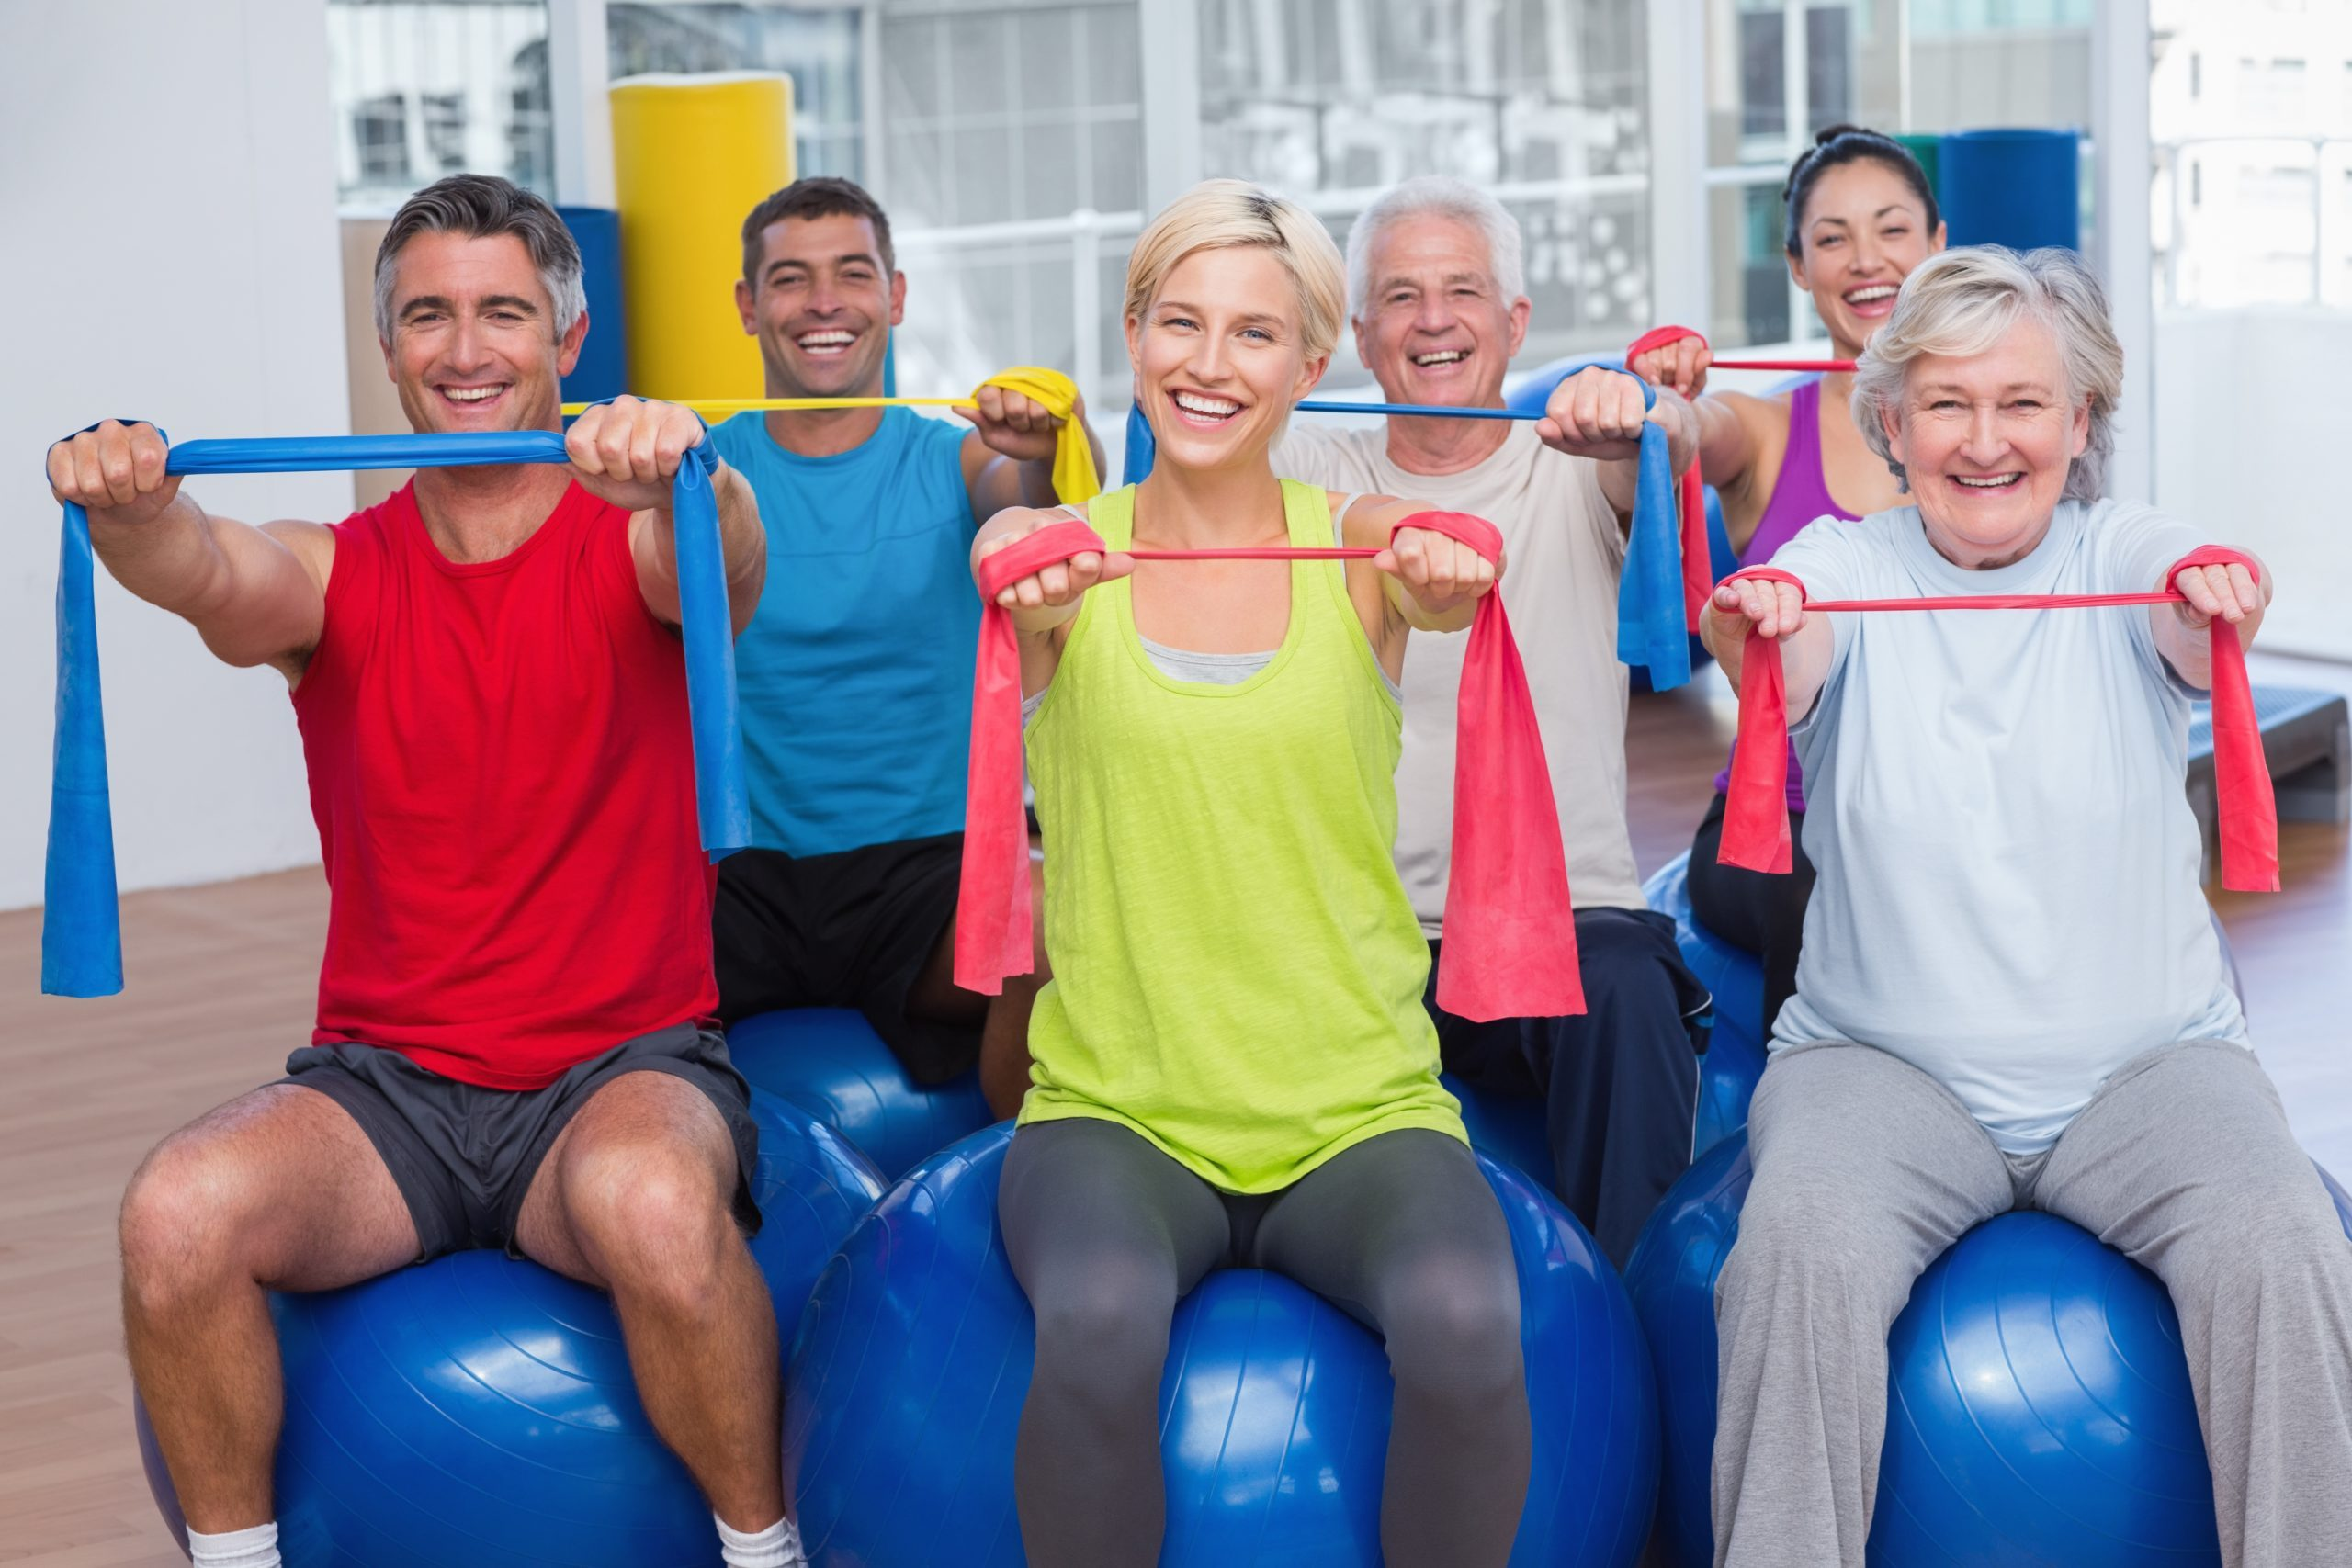 Top 5 Moves With Resistance Bands For Over 60s